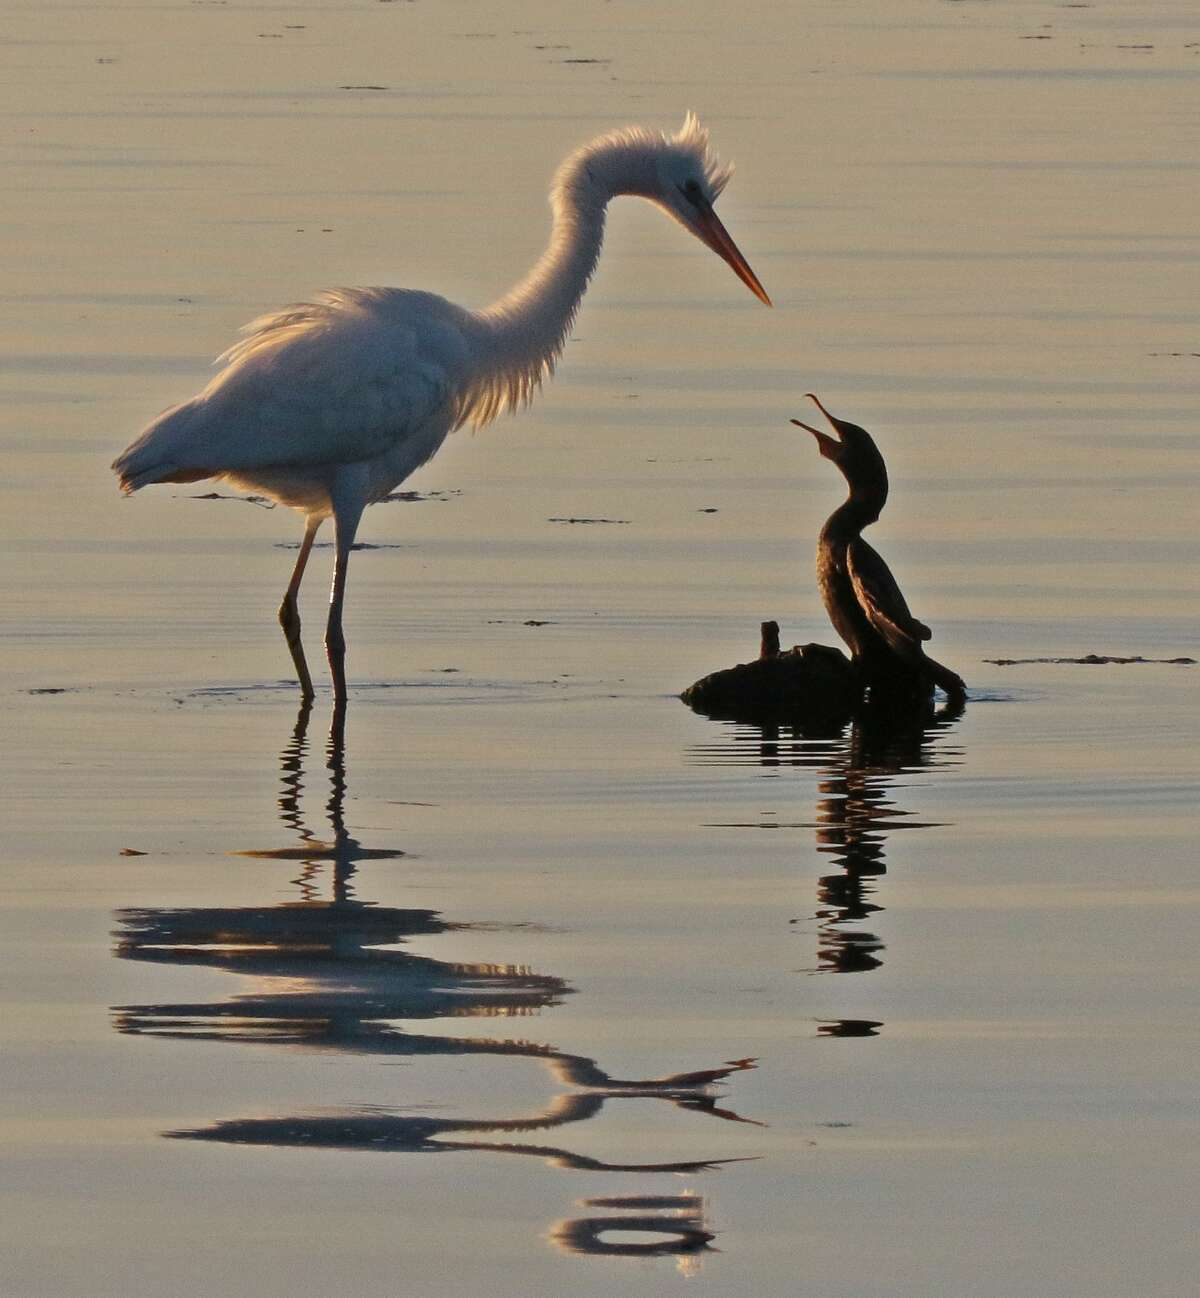 The small cormorant stod its ground, and the egret eventually left. picture taken in Key Largo, Fla., by Joe Sheehan of Voorheesville.